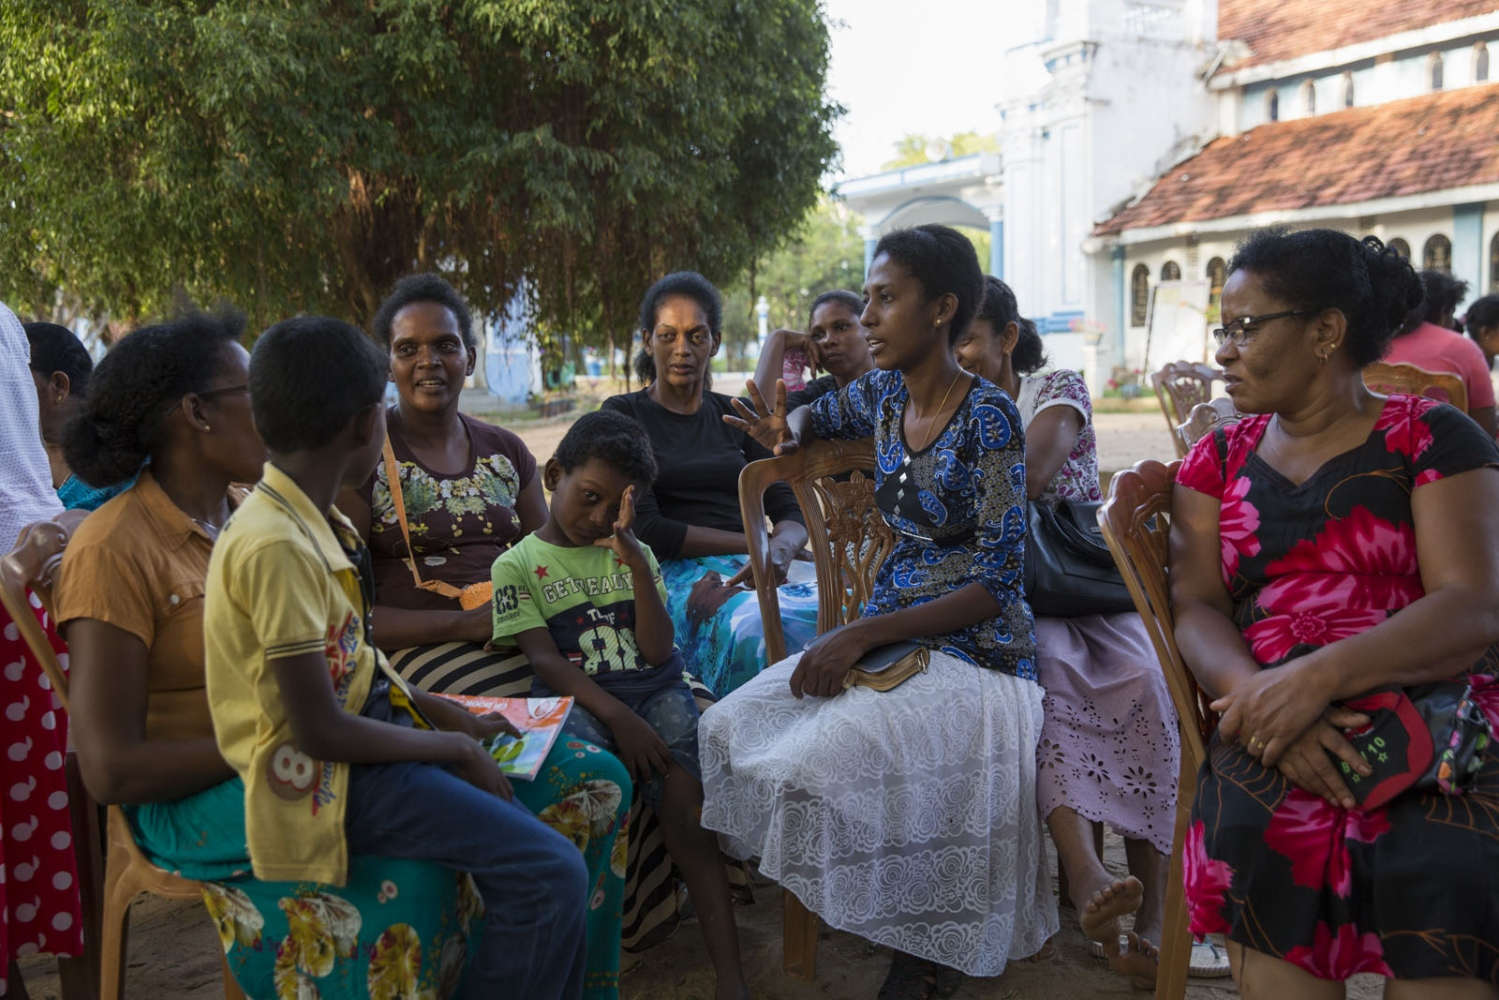 Litty Chrishanty, 38, (centre) chats with members of the community during a rehearsal for their 500 year celebration at St Mary's church. Puttalam, Sri Lanka - September 2017